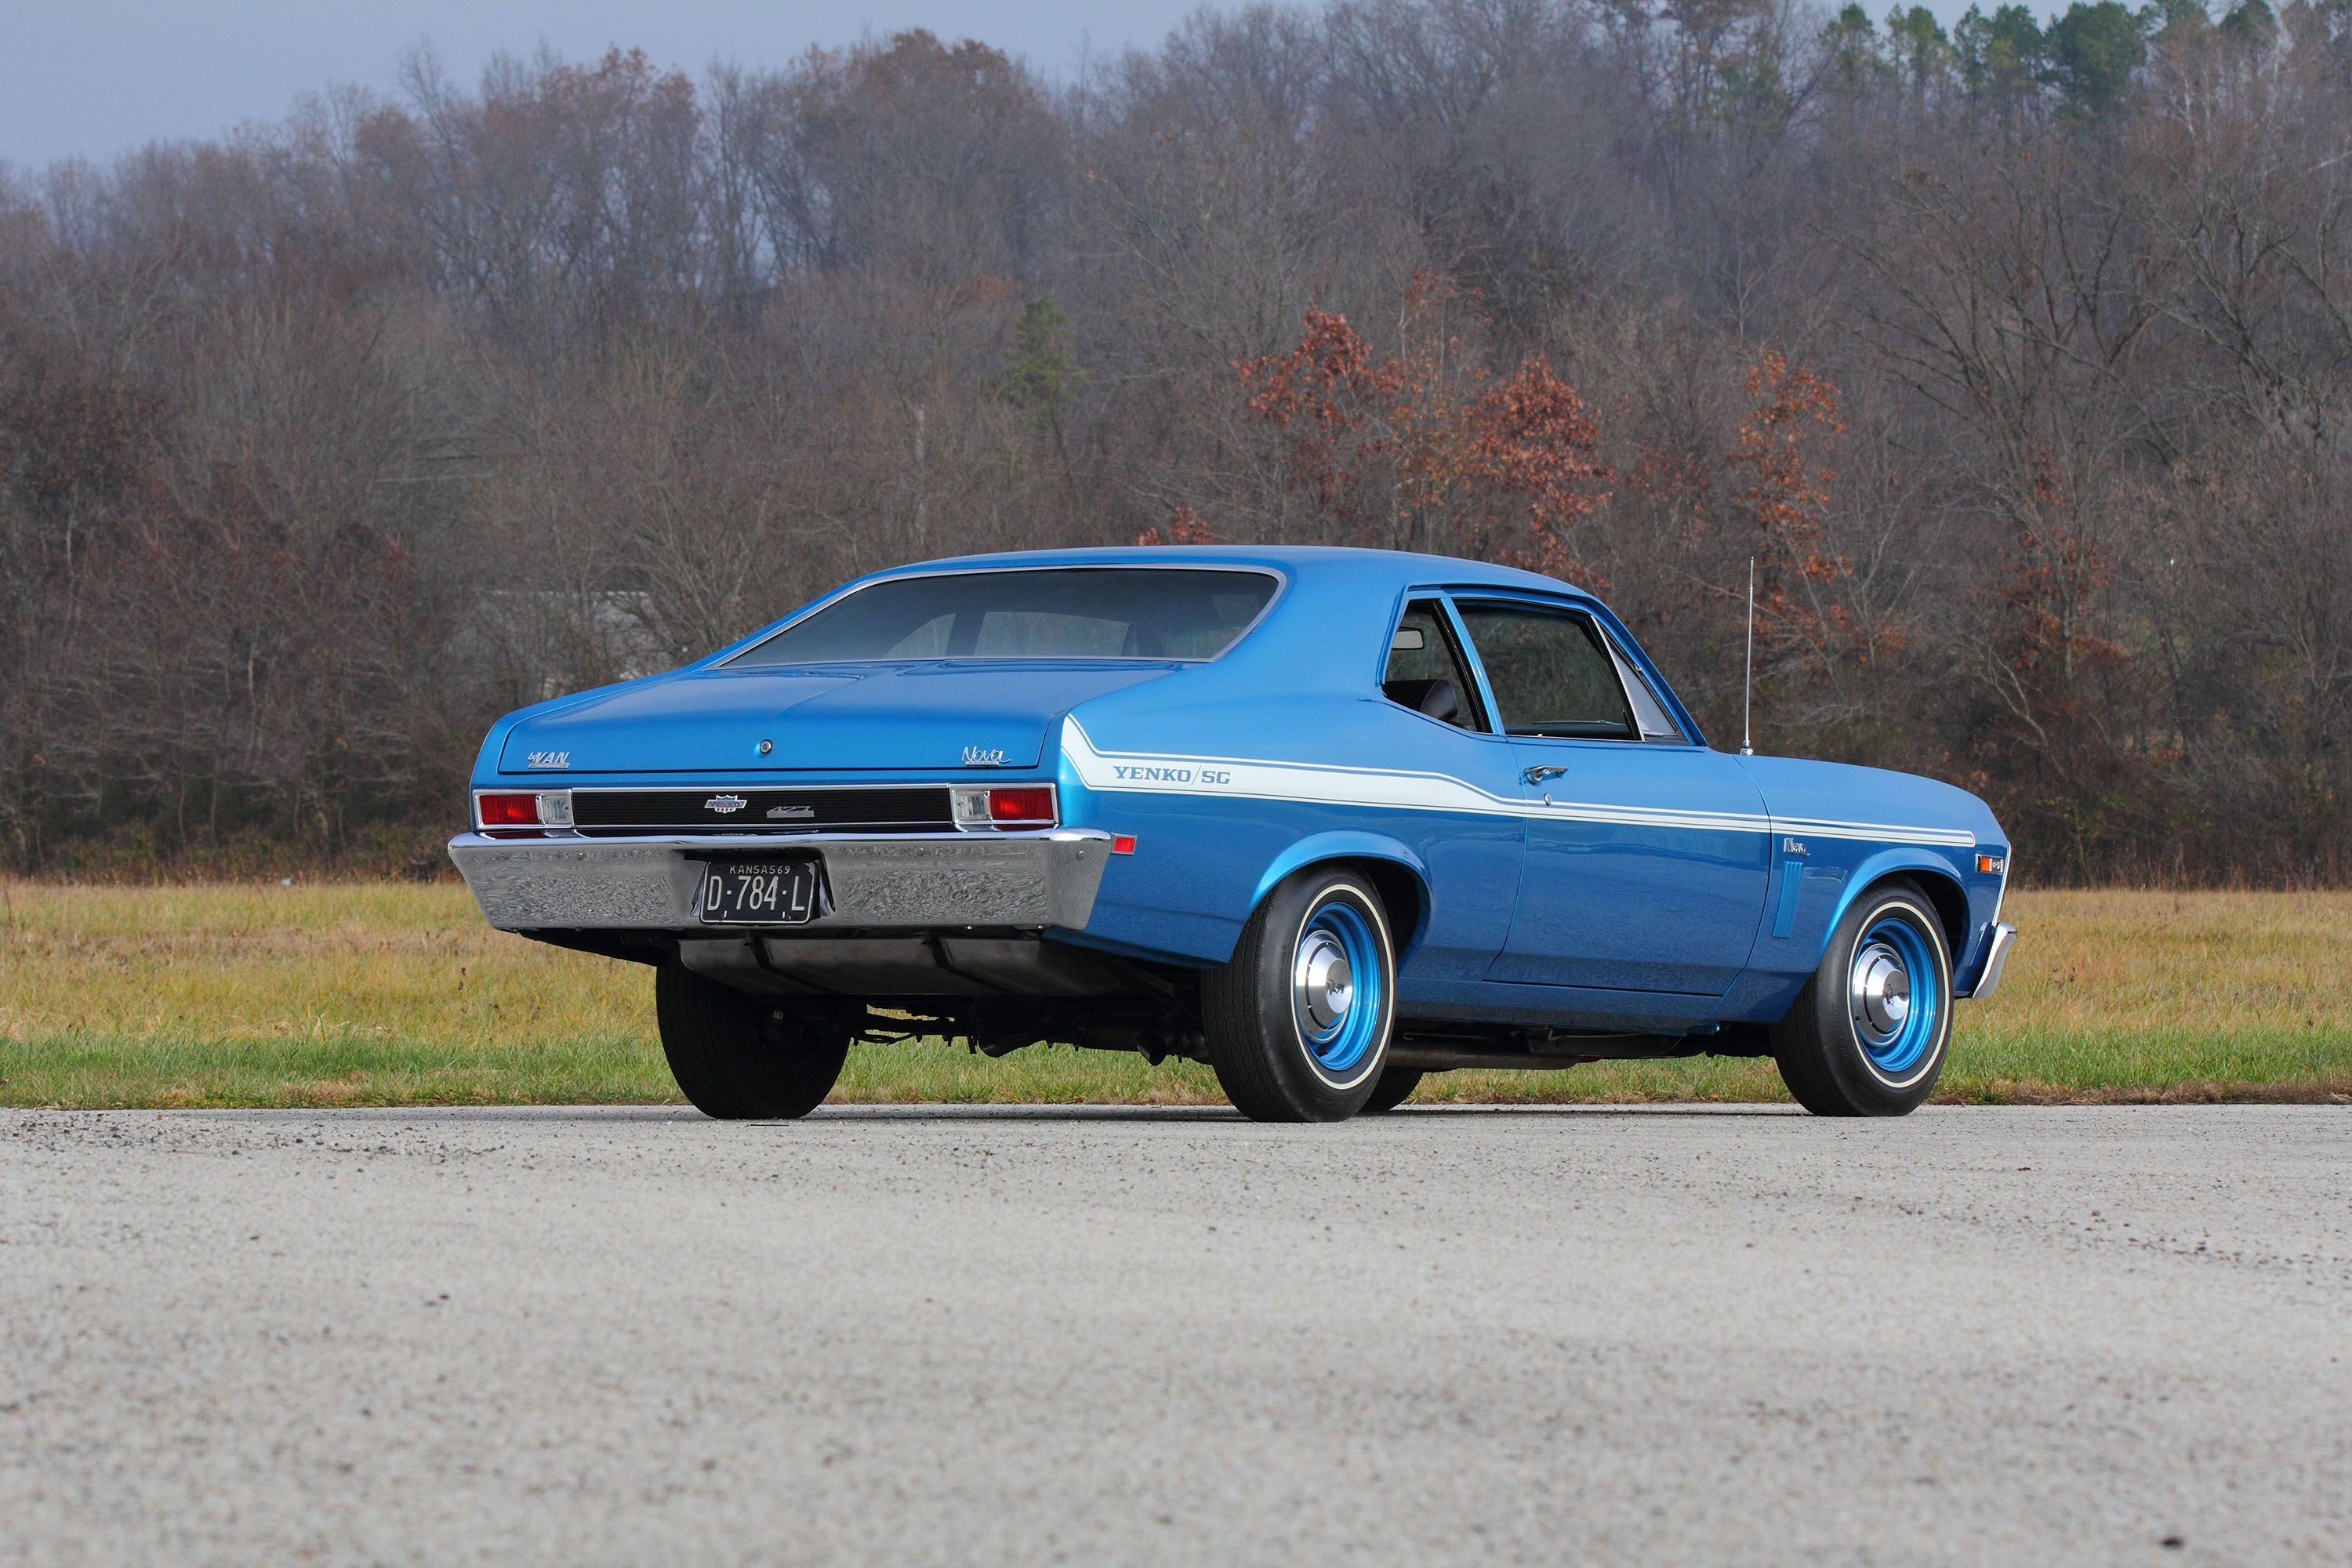 This Ultra Rare Yenko Sc427 Nova Is Up For Auction 1968 Chevrolet Camaro